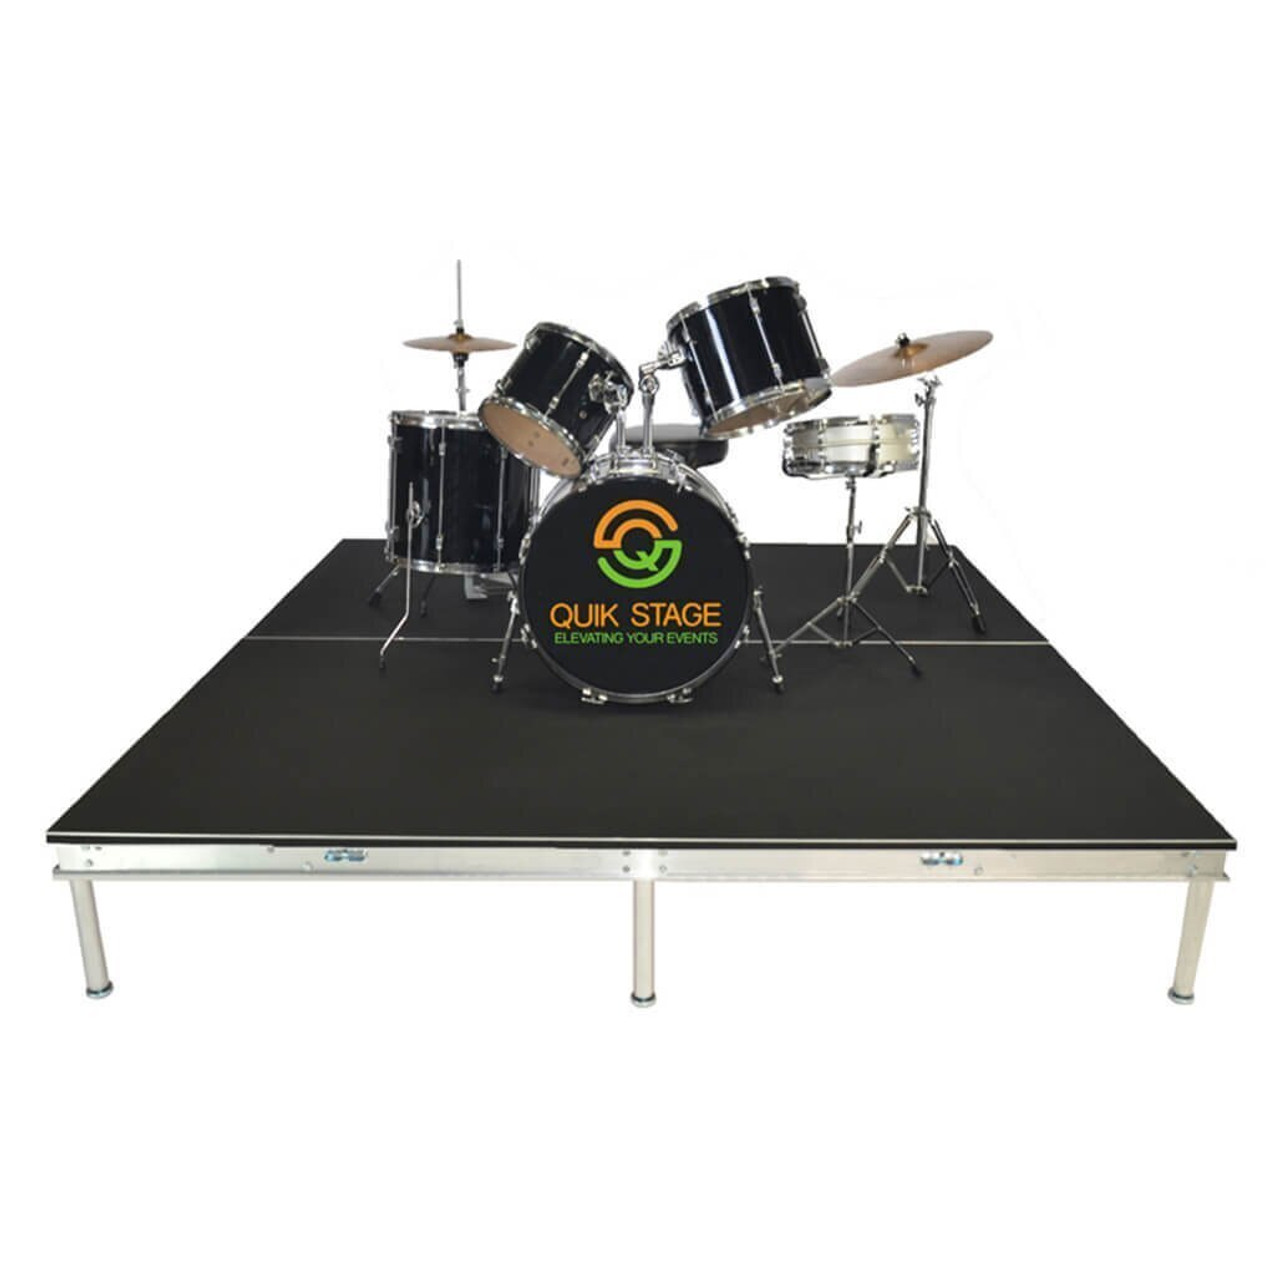 Quik Stage 4' x 24' High Portable Stage Package with Black Polyvinyl Non-Skid Surface. Additional Heights and Surfaces Available - Drum Riser without skirting